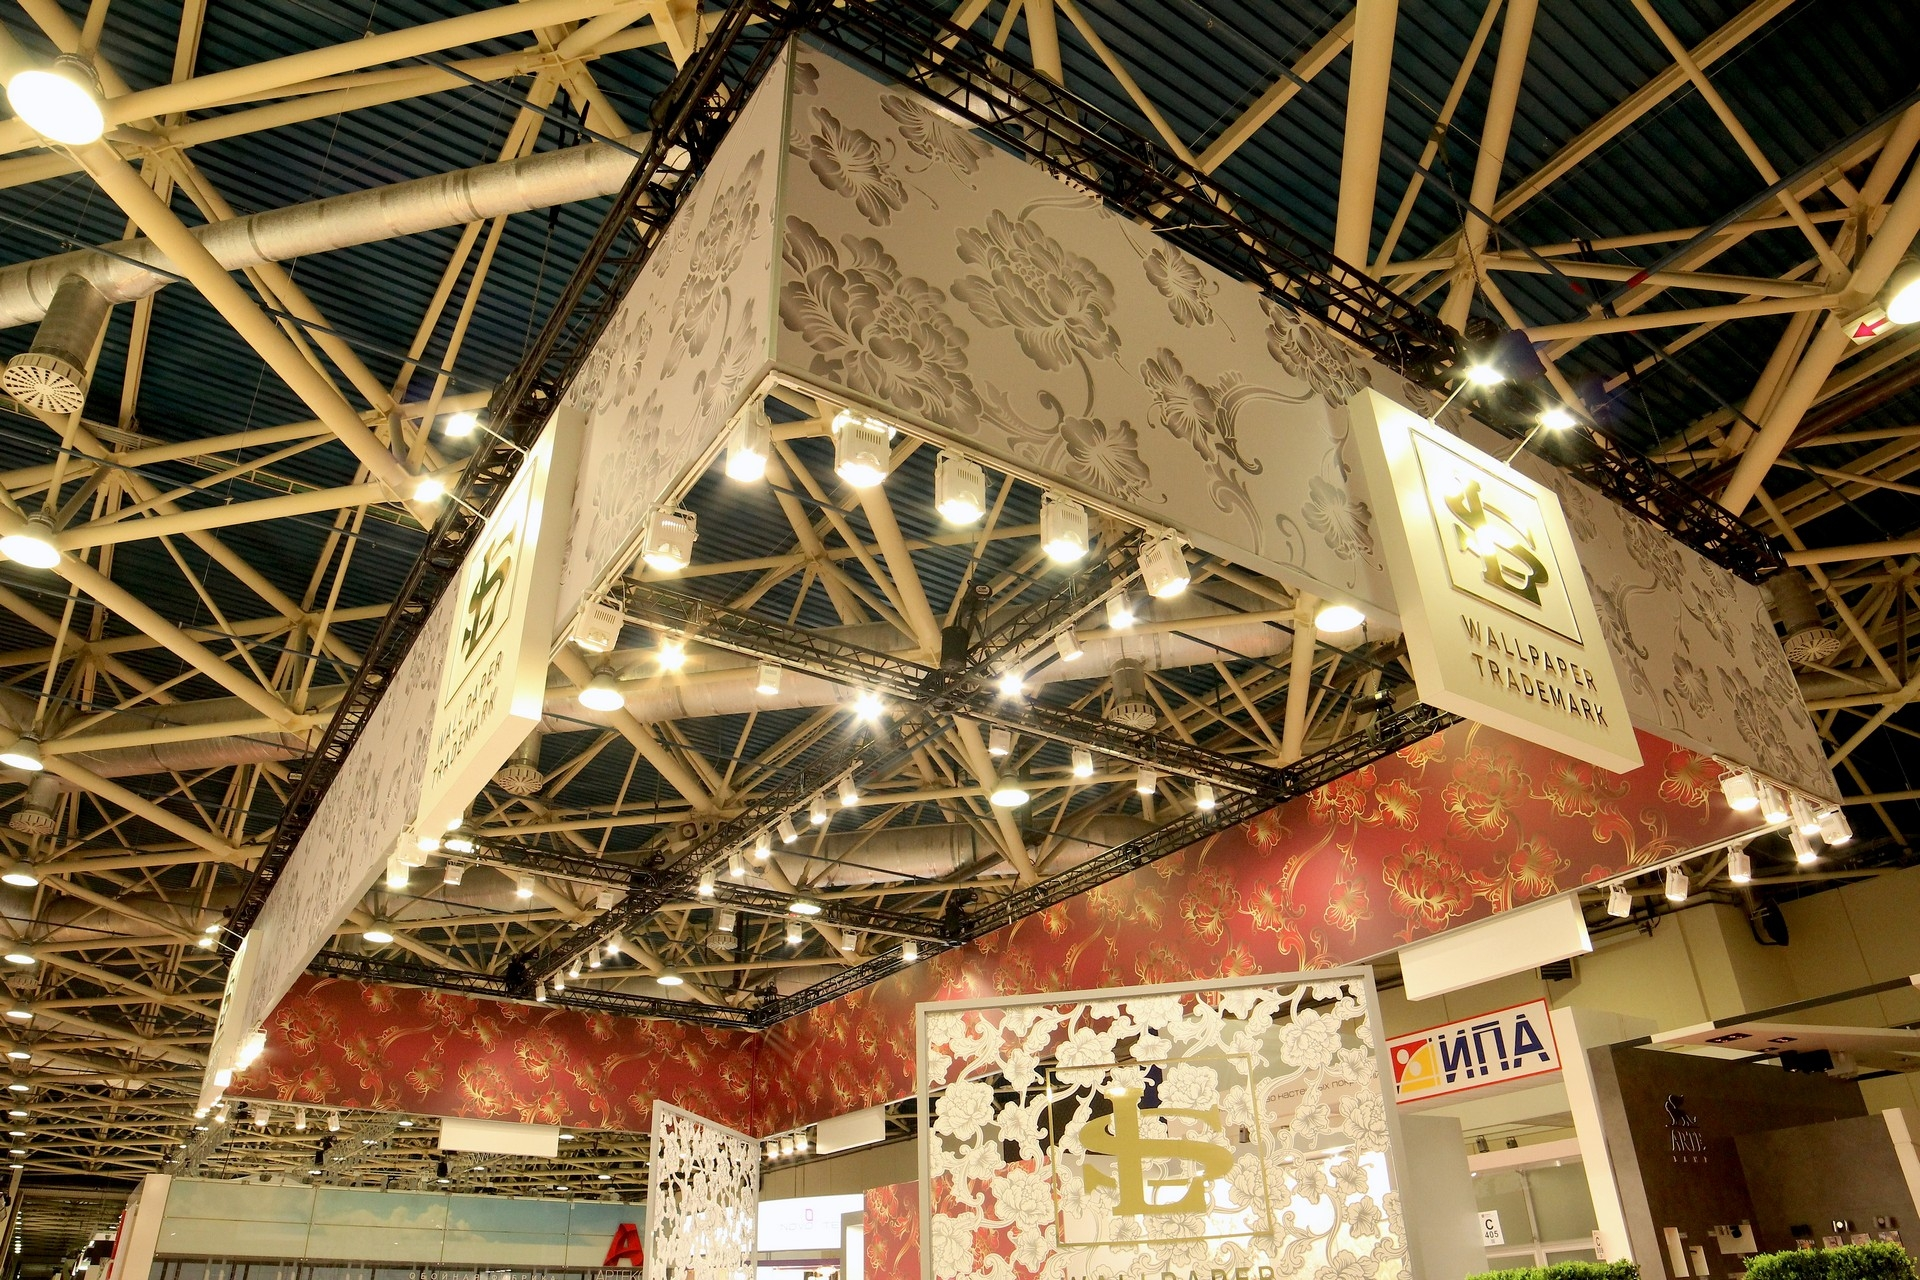 Exhibition Stand Wallpaper : Stands of the alta profil and wallpaper traidmark companies at the